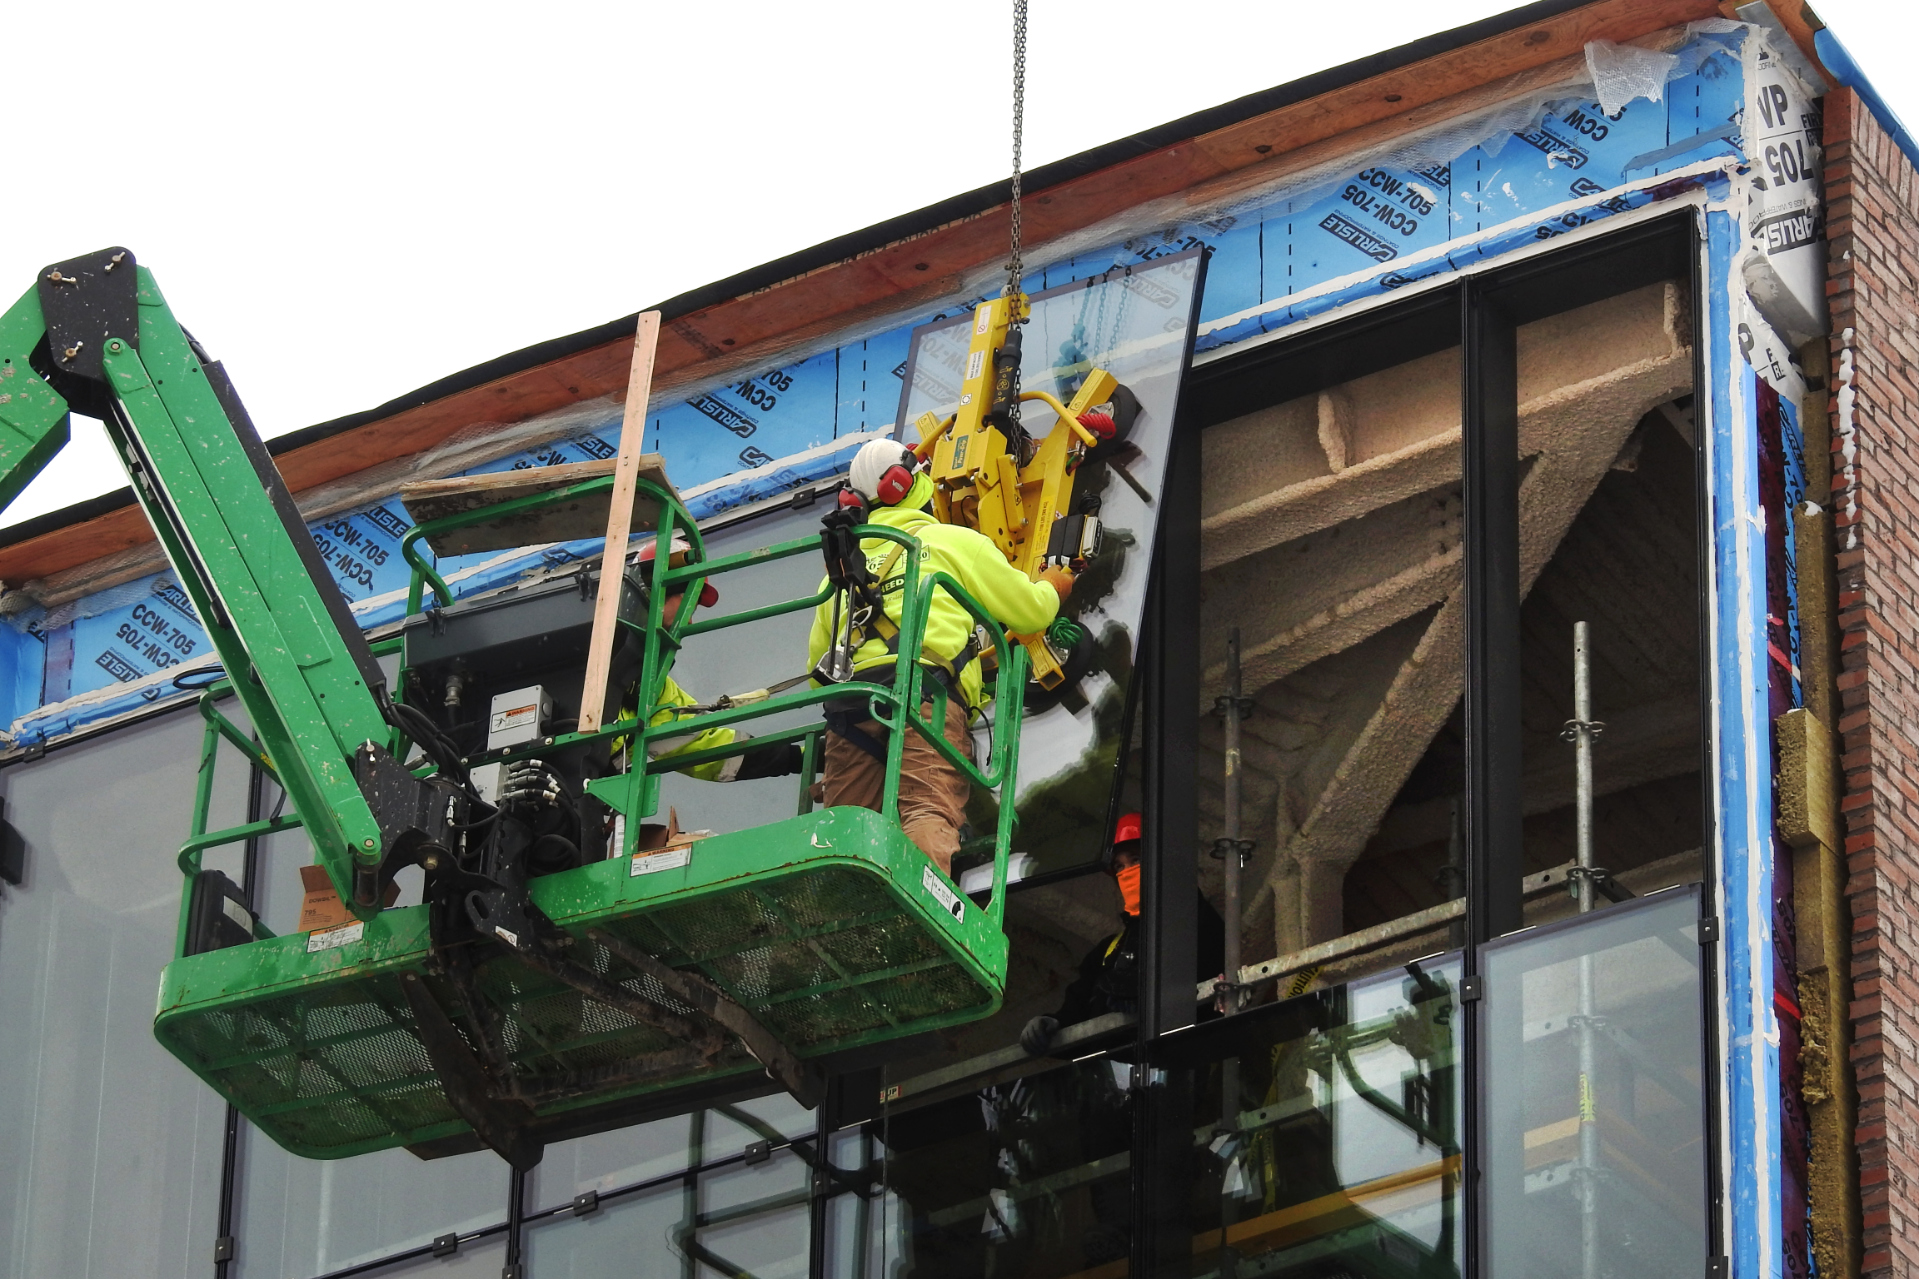 The final panes of glass are installed on the Beacon at the Bonney Science Center by workers from Lockheed Window and O&P Glass. The yellow contraption is a vacuum lifter that holds and maneuvers the pane. (Jay Burns/Bates College)